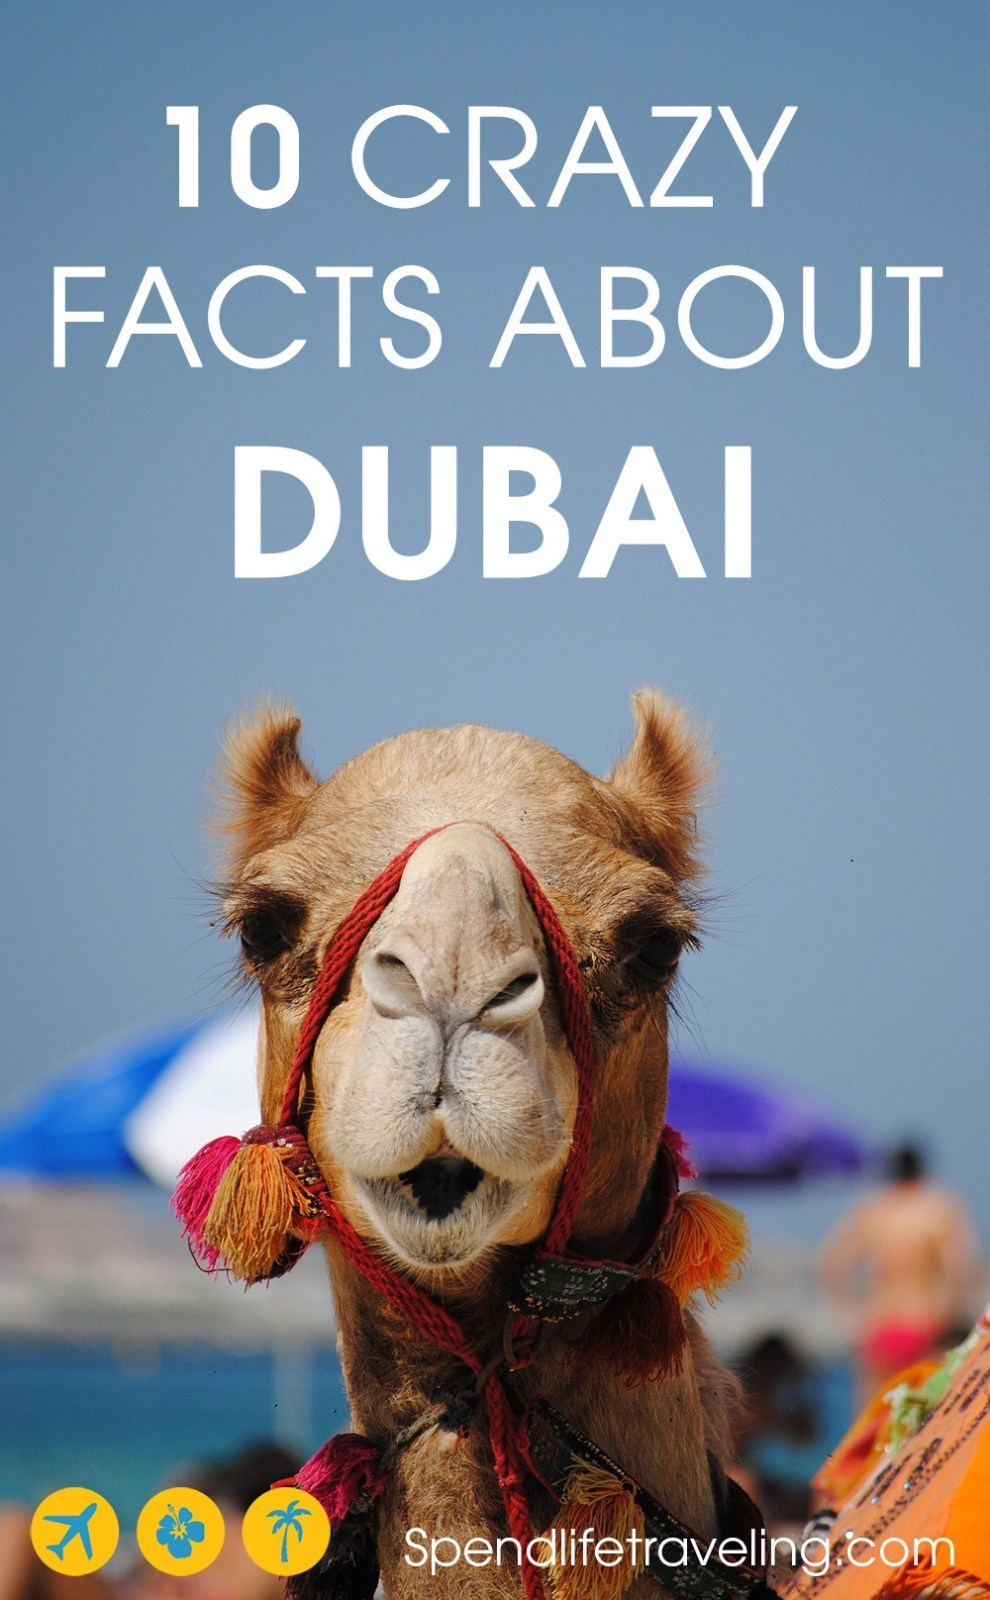 10 Facts about Dubai: some interesting, some crazy and some shocking! #Dubai #crazyfacts #travel #UAE #emirates